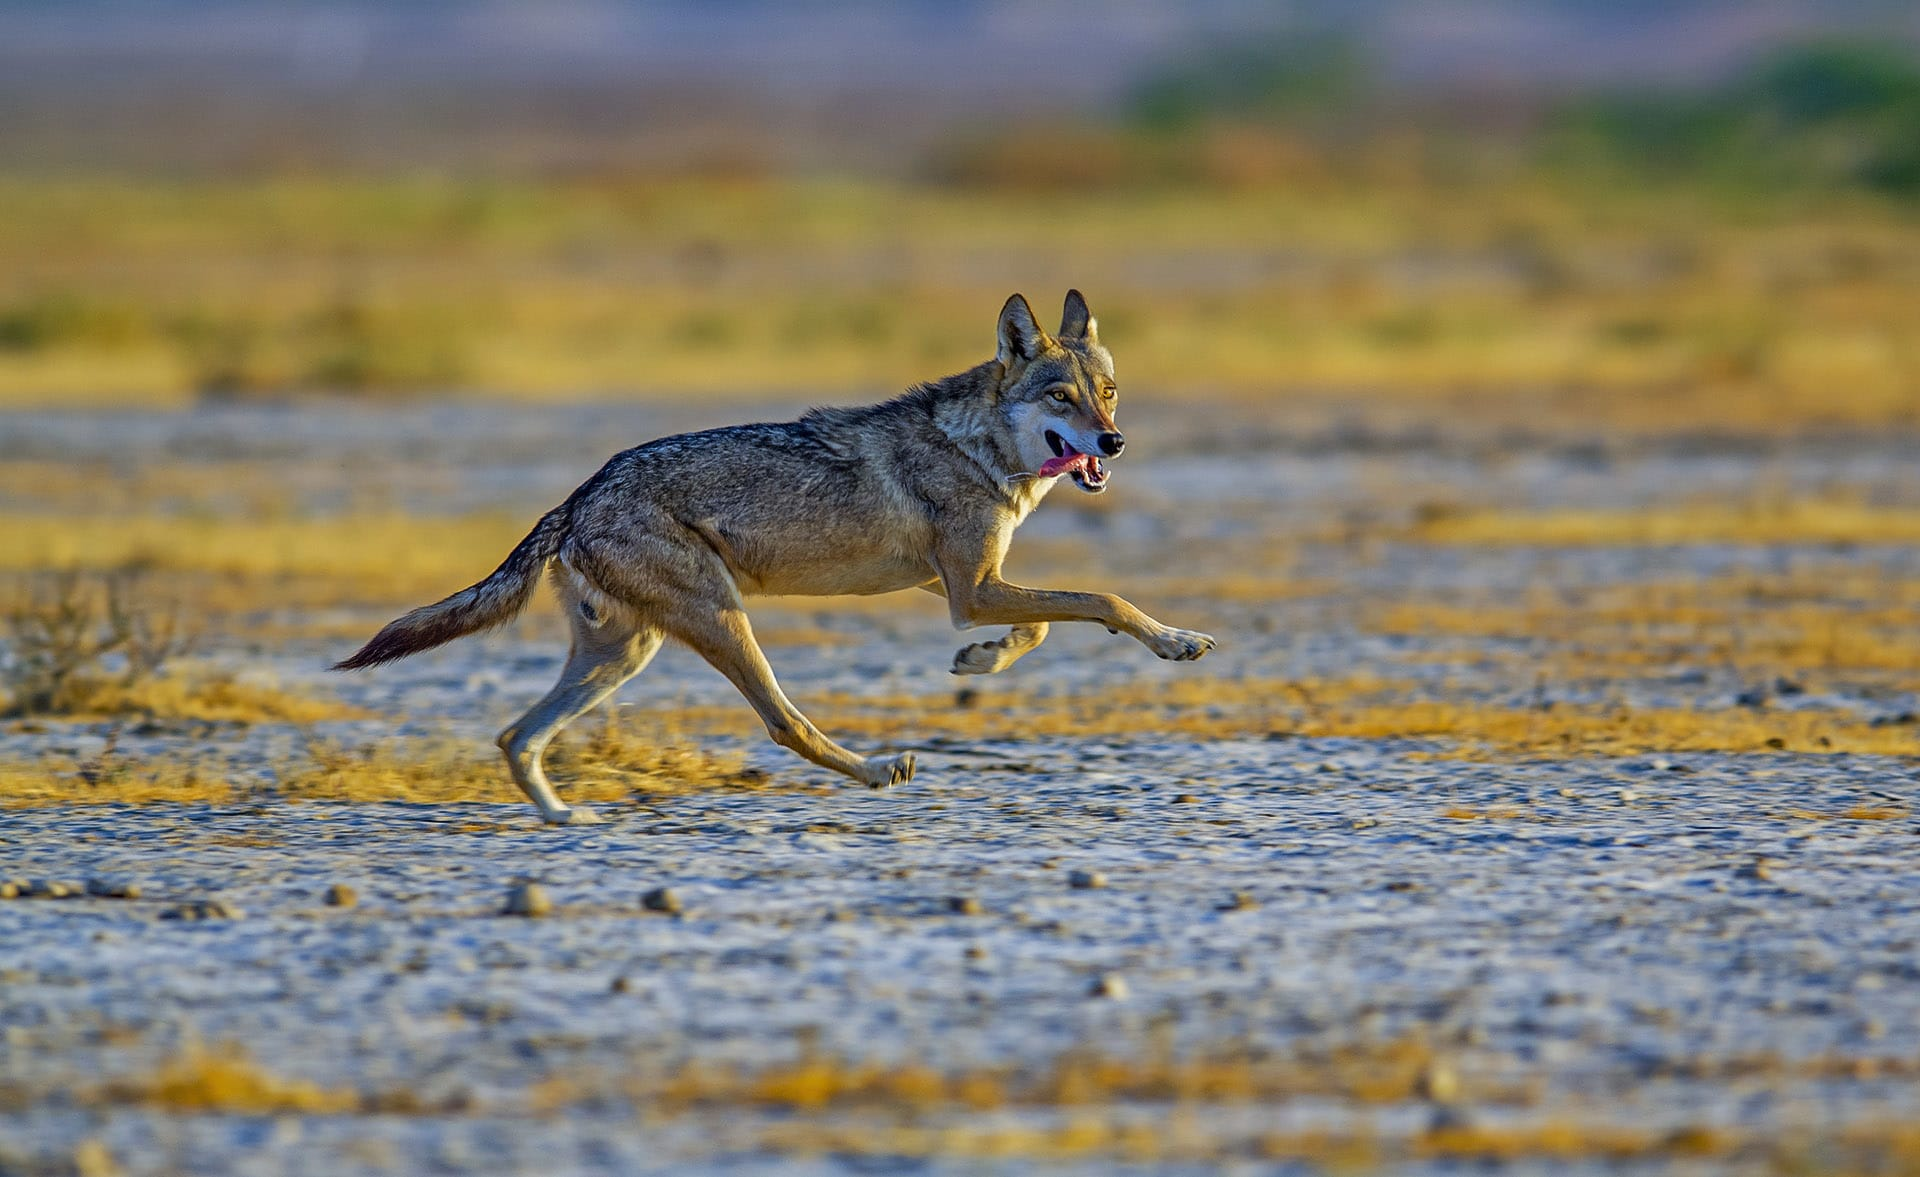 The Indian wolf (Canis lupus pallipes) too roams these parts. It is found across Asia, from Israel to China, but their numbers have been dwindling due to loss of habitat, further resulting in conflict with human beings.